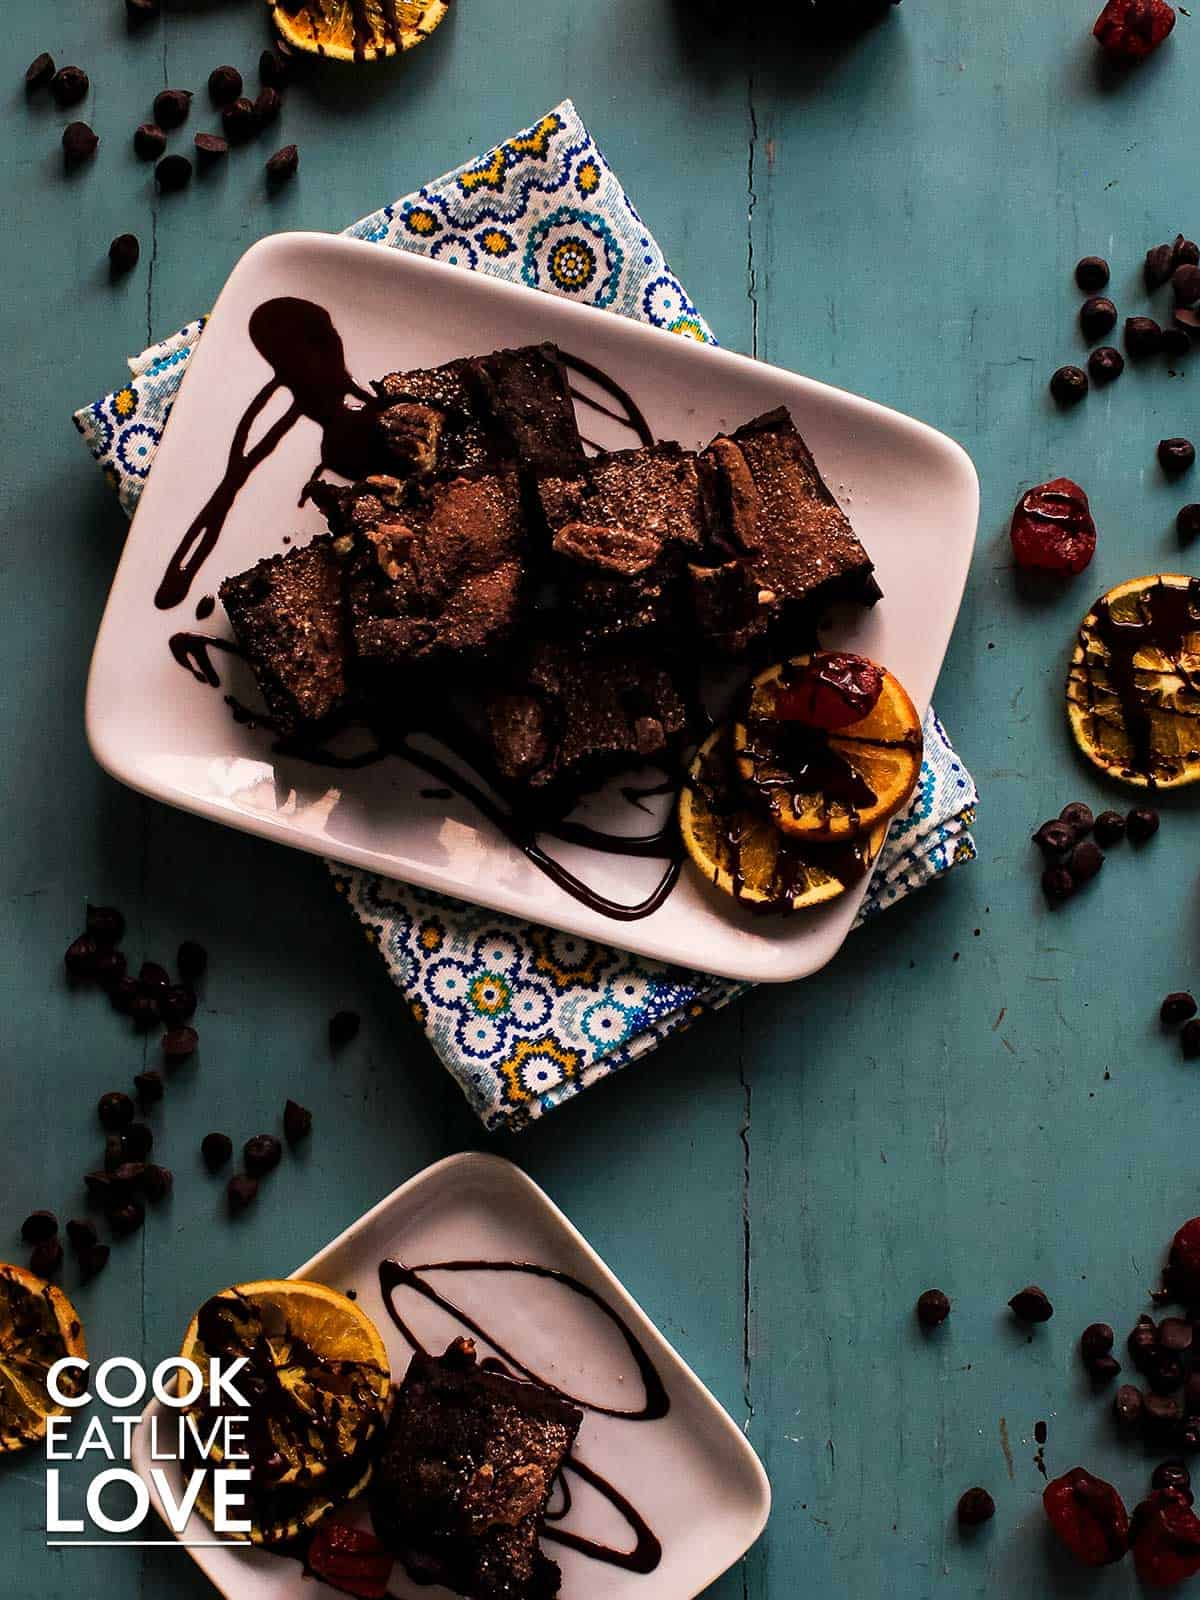 Brownies on plates with chocolate drizzle